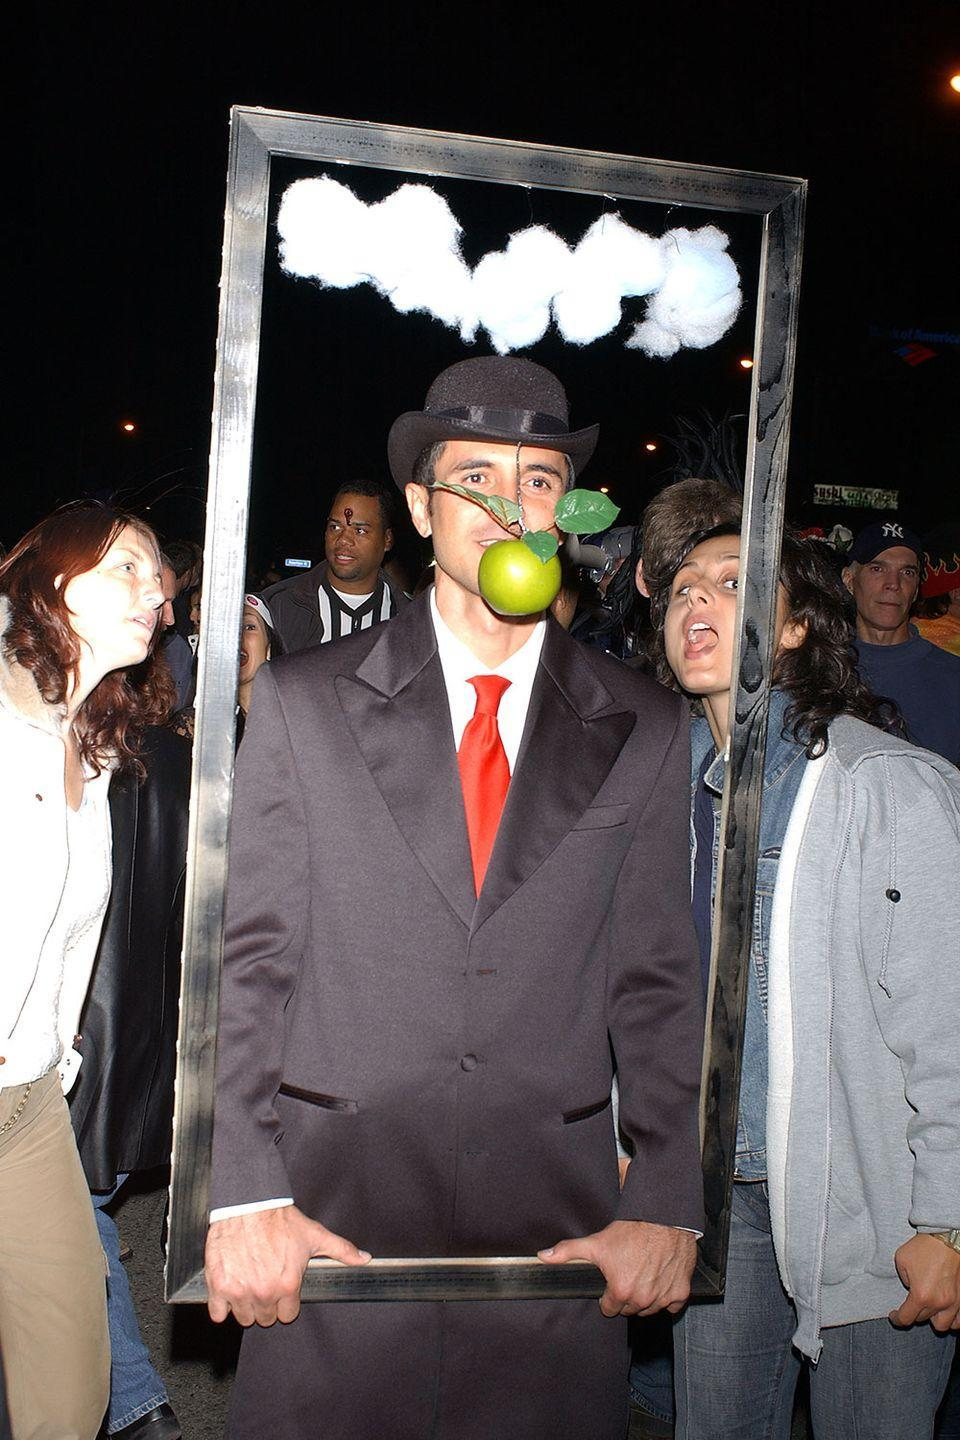 <p>It's worth pointing out that the photobomber was not part of René Magritte's original The Son of Man painting.</p>